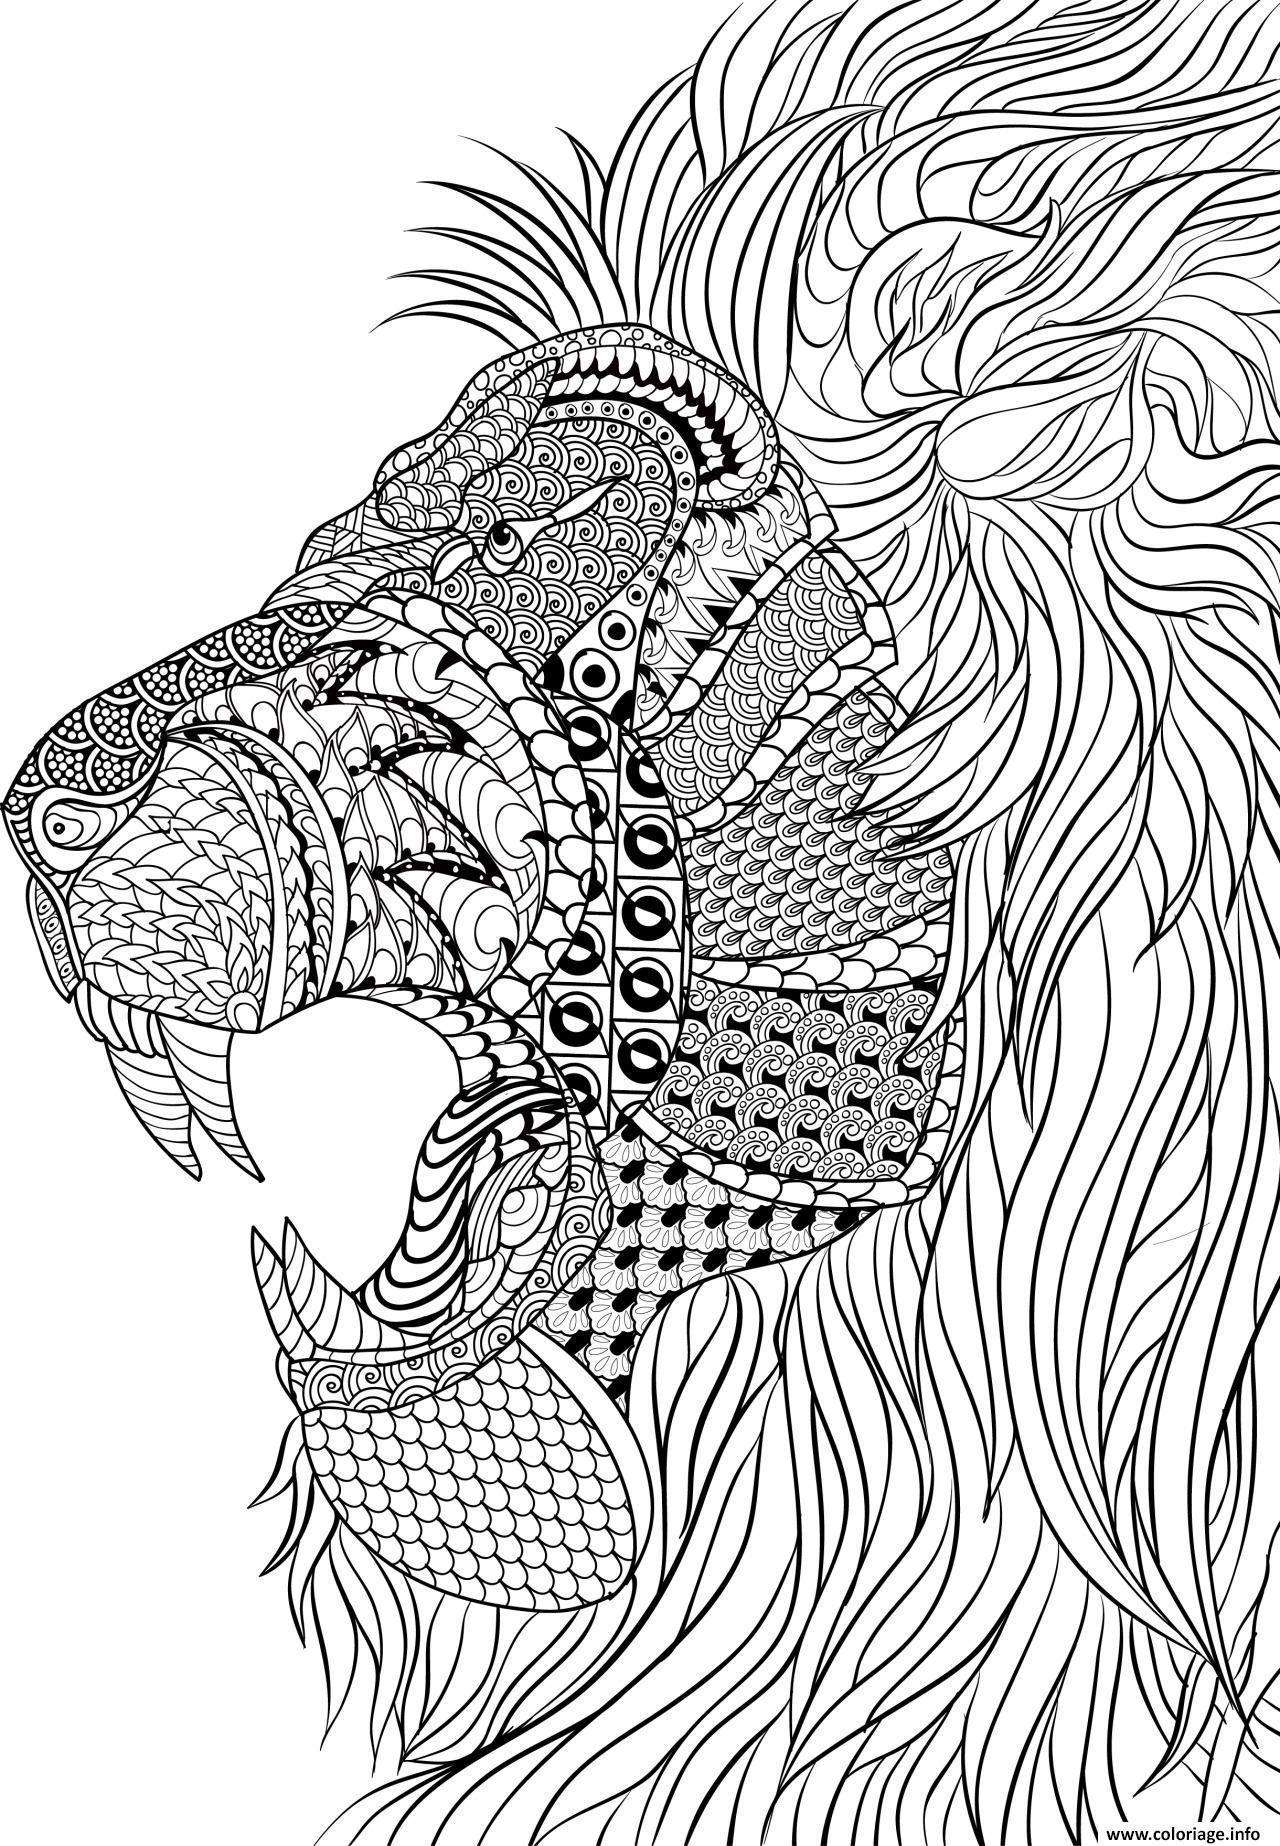 Coloriage Lion Adulte Anti Stress Dessin   Imprimer